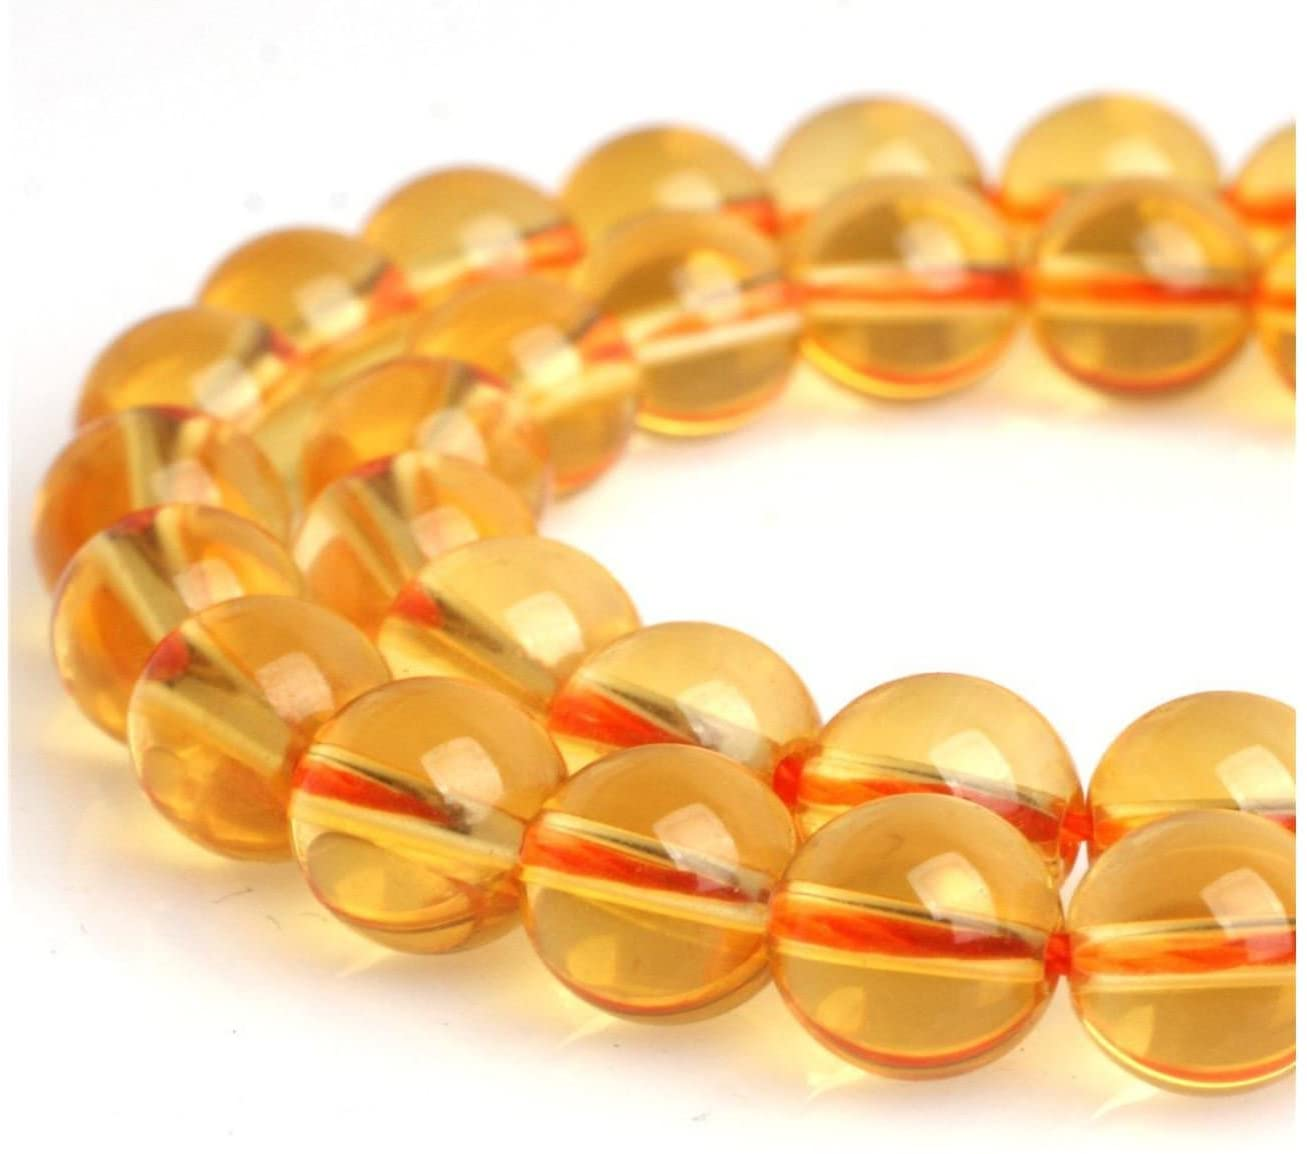 2 Strands Natural Citrine Yellow Crystal Gemstone 8mm Round Loose Stone Beads (~ 88-94pcs total) for Jewelry Craft Making GH2-8